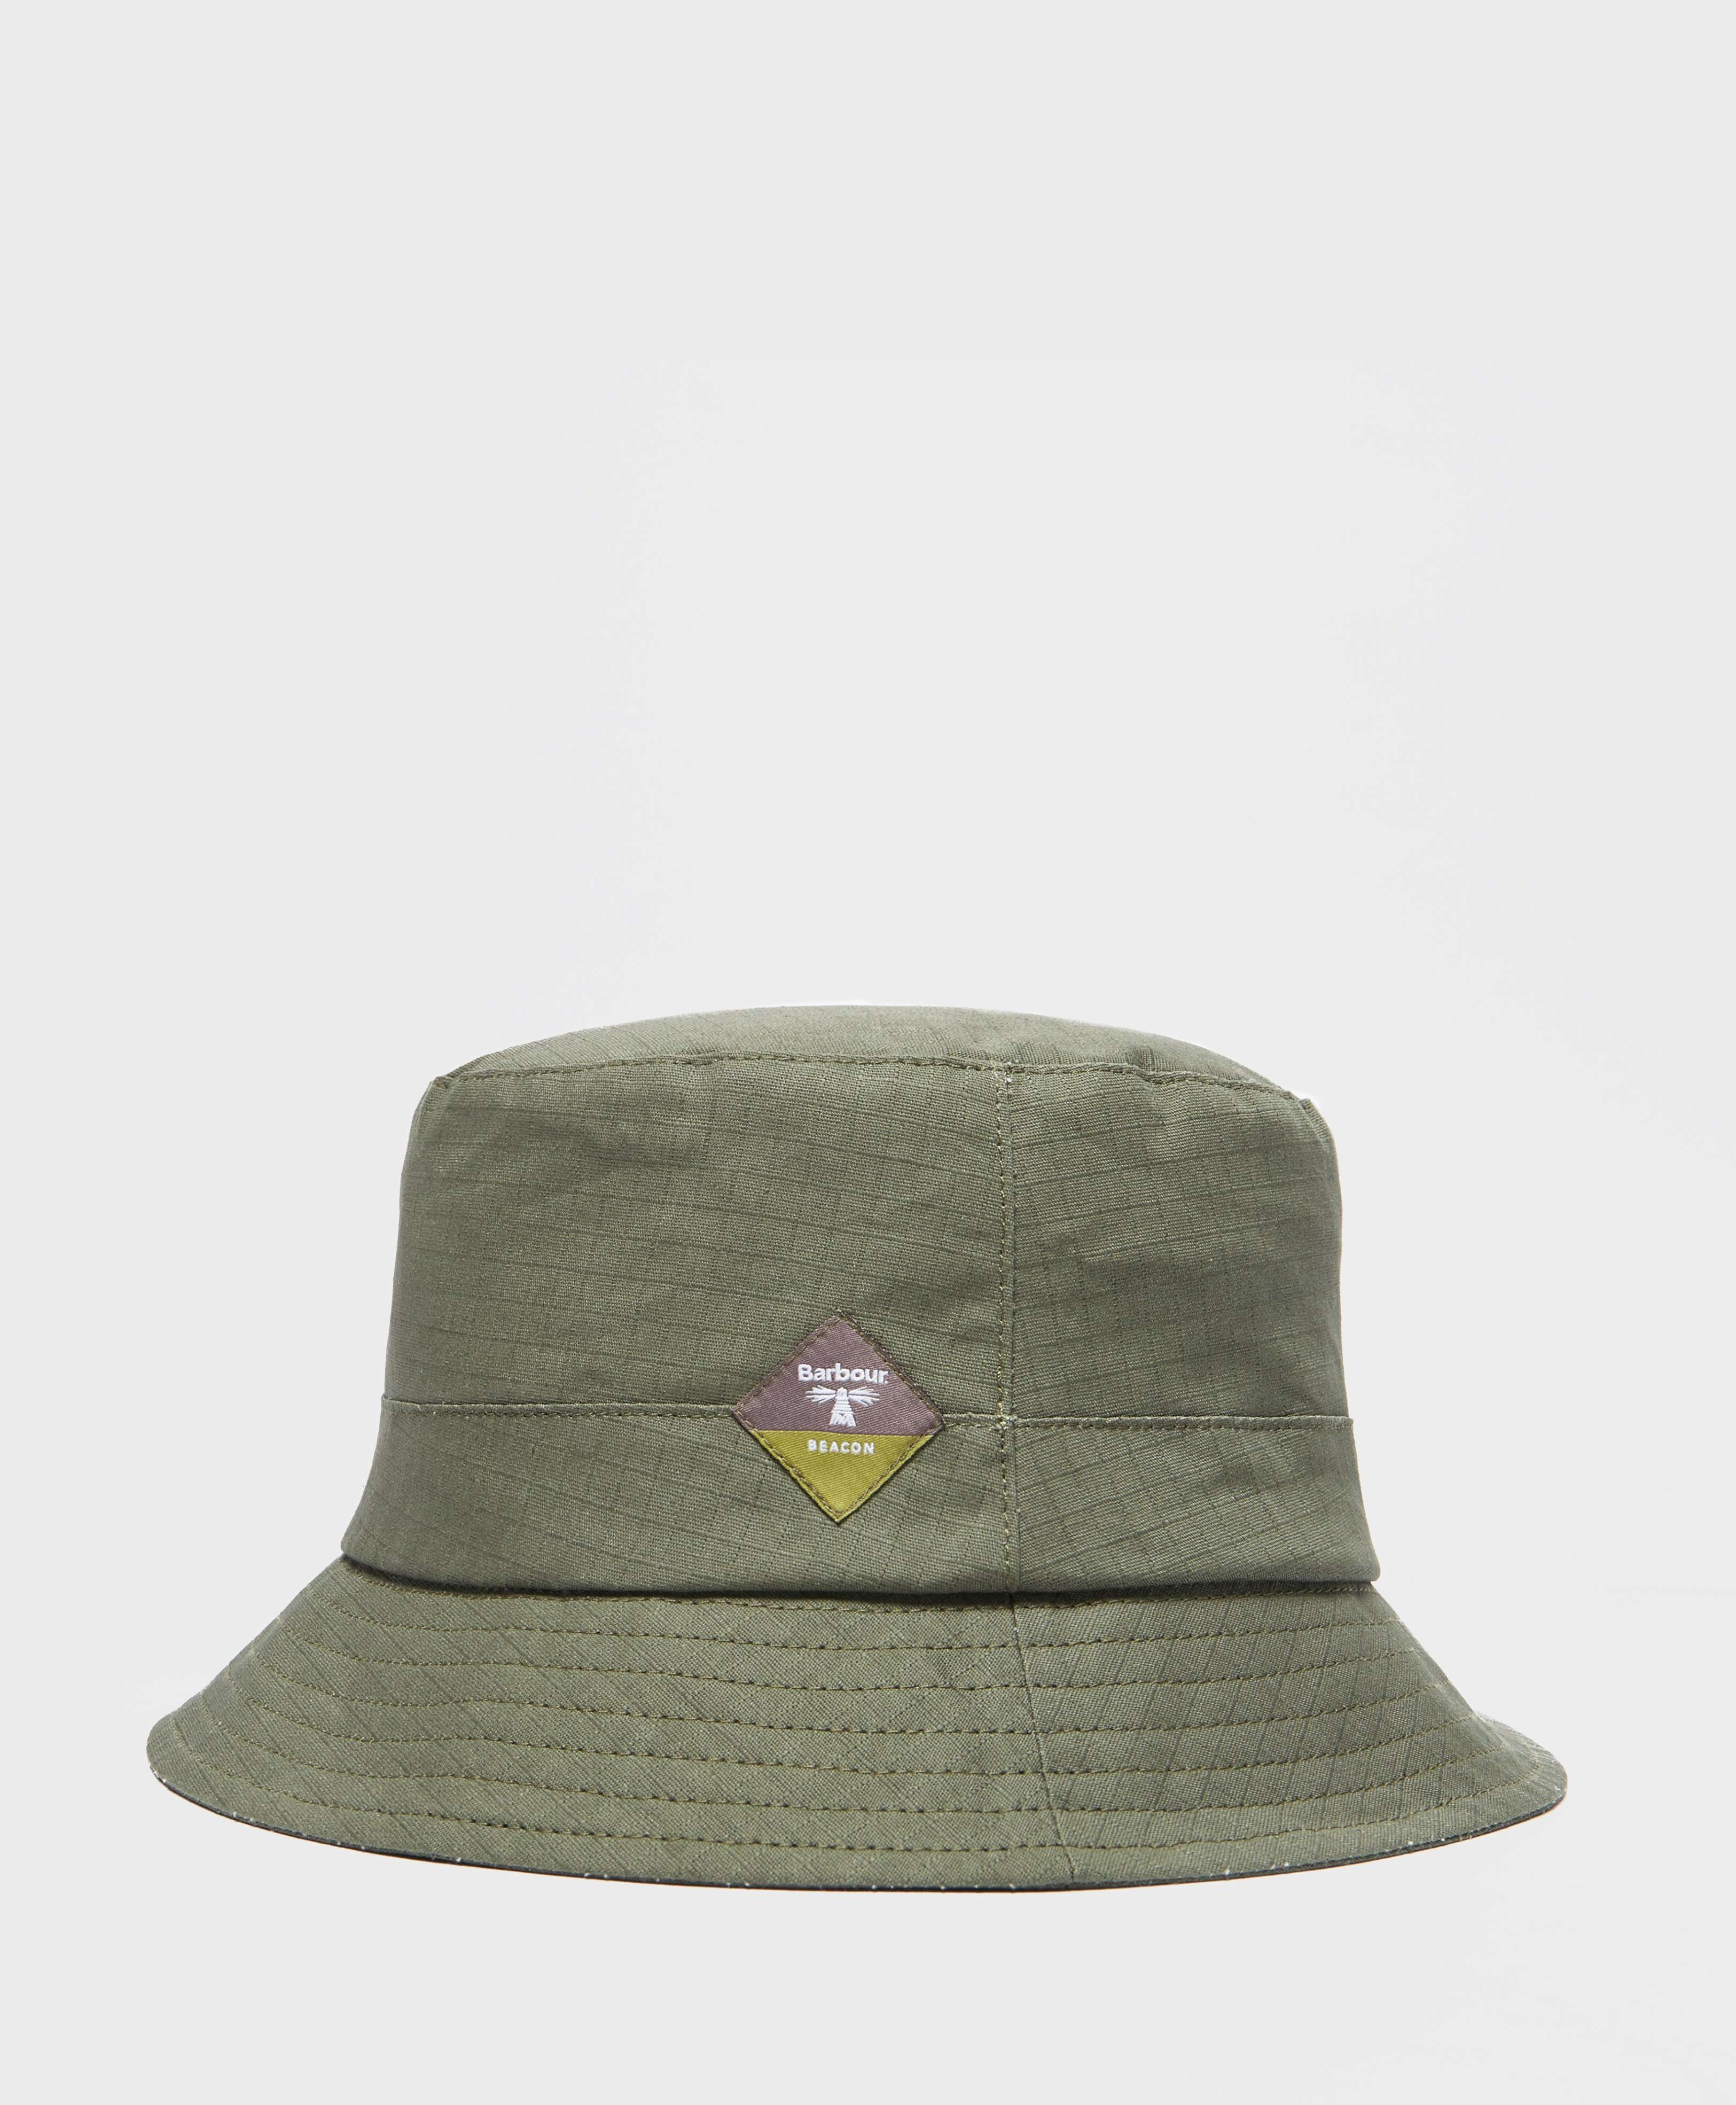 Barbour Beacon Gully Bucket Hat